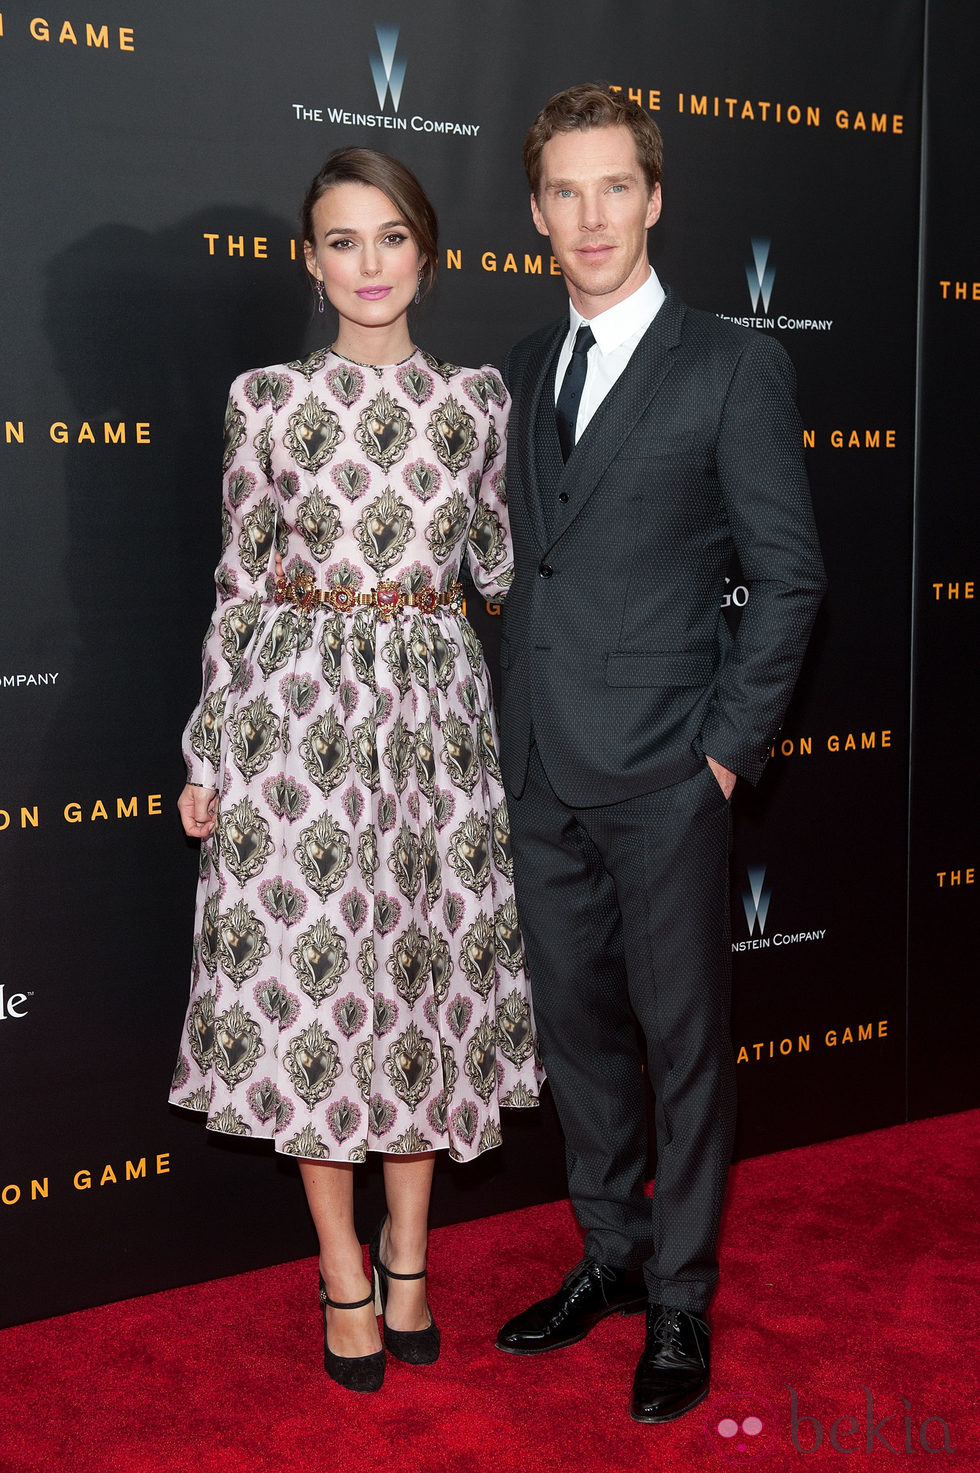 Benedict Cumberbatch y Keira Knightley acuden al estreno de 'The Imitation Game' en Nueva York